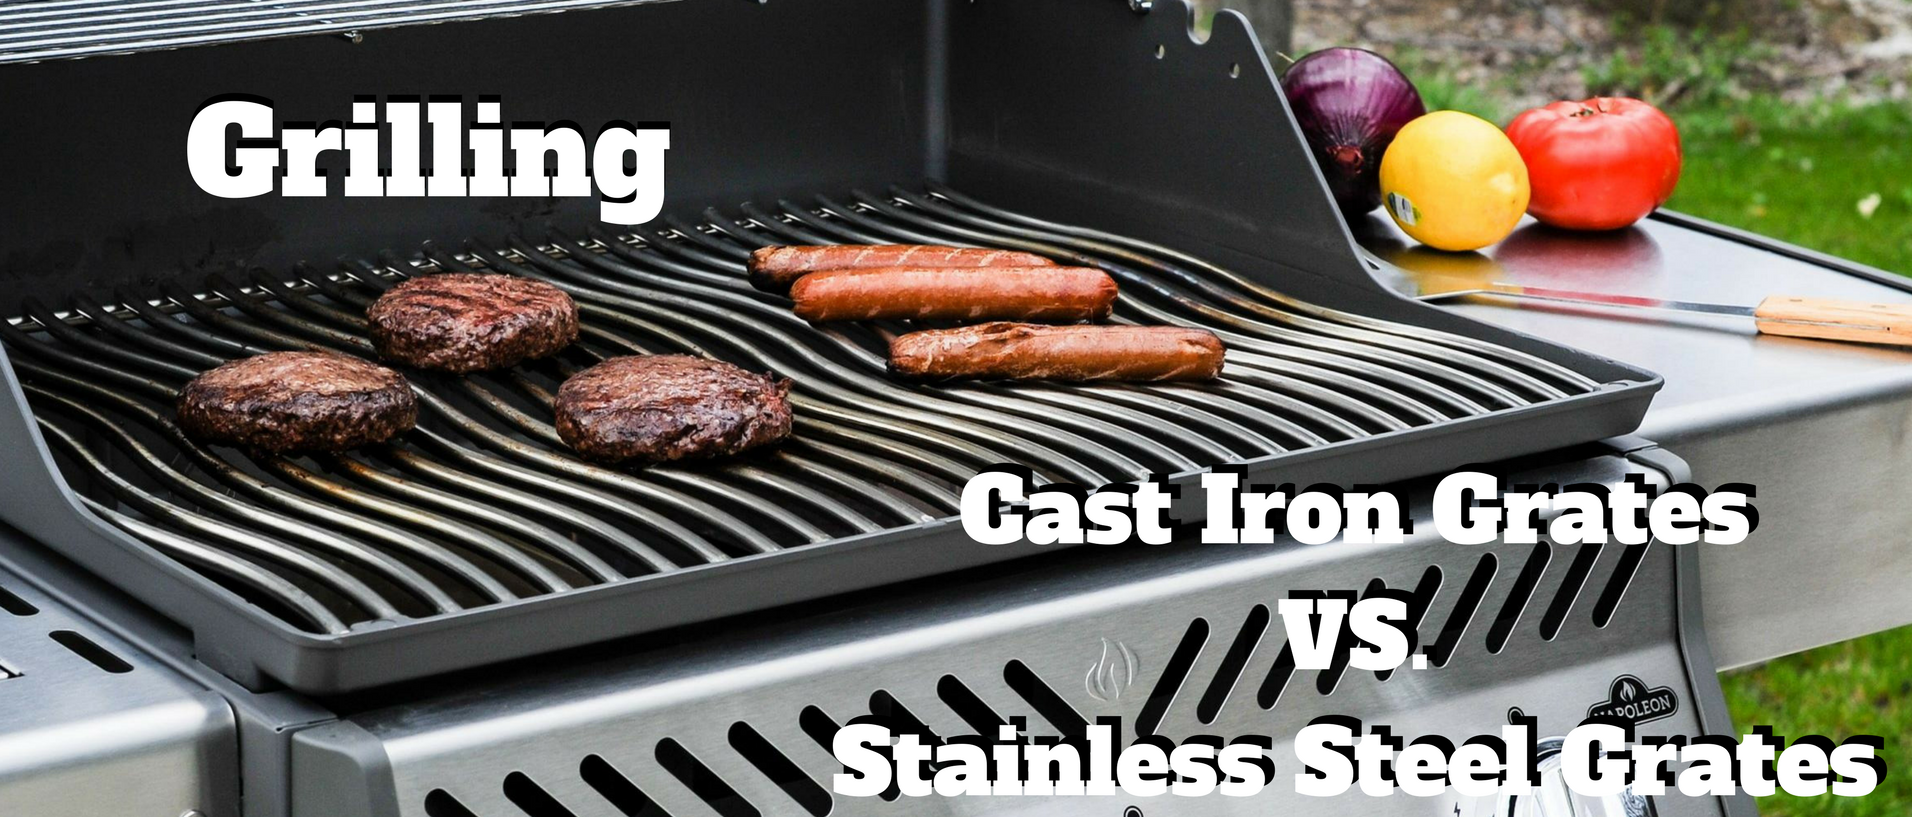 grilling cast iron grates versus stainless steel grates